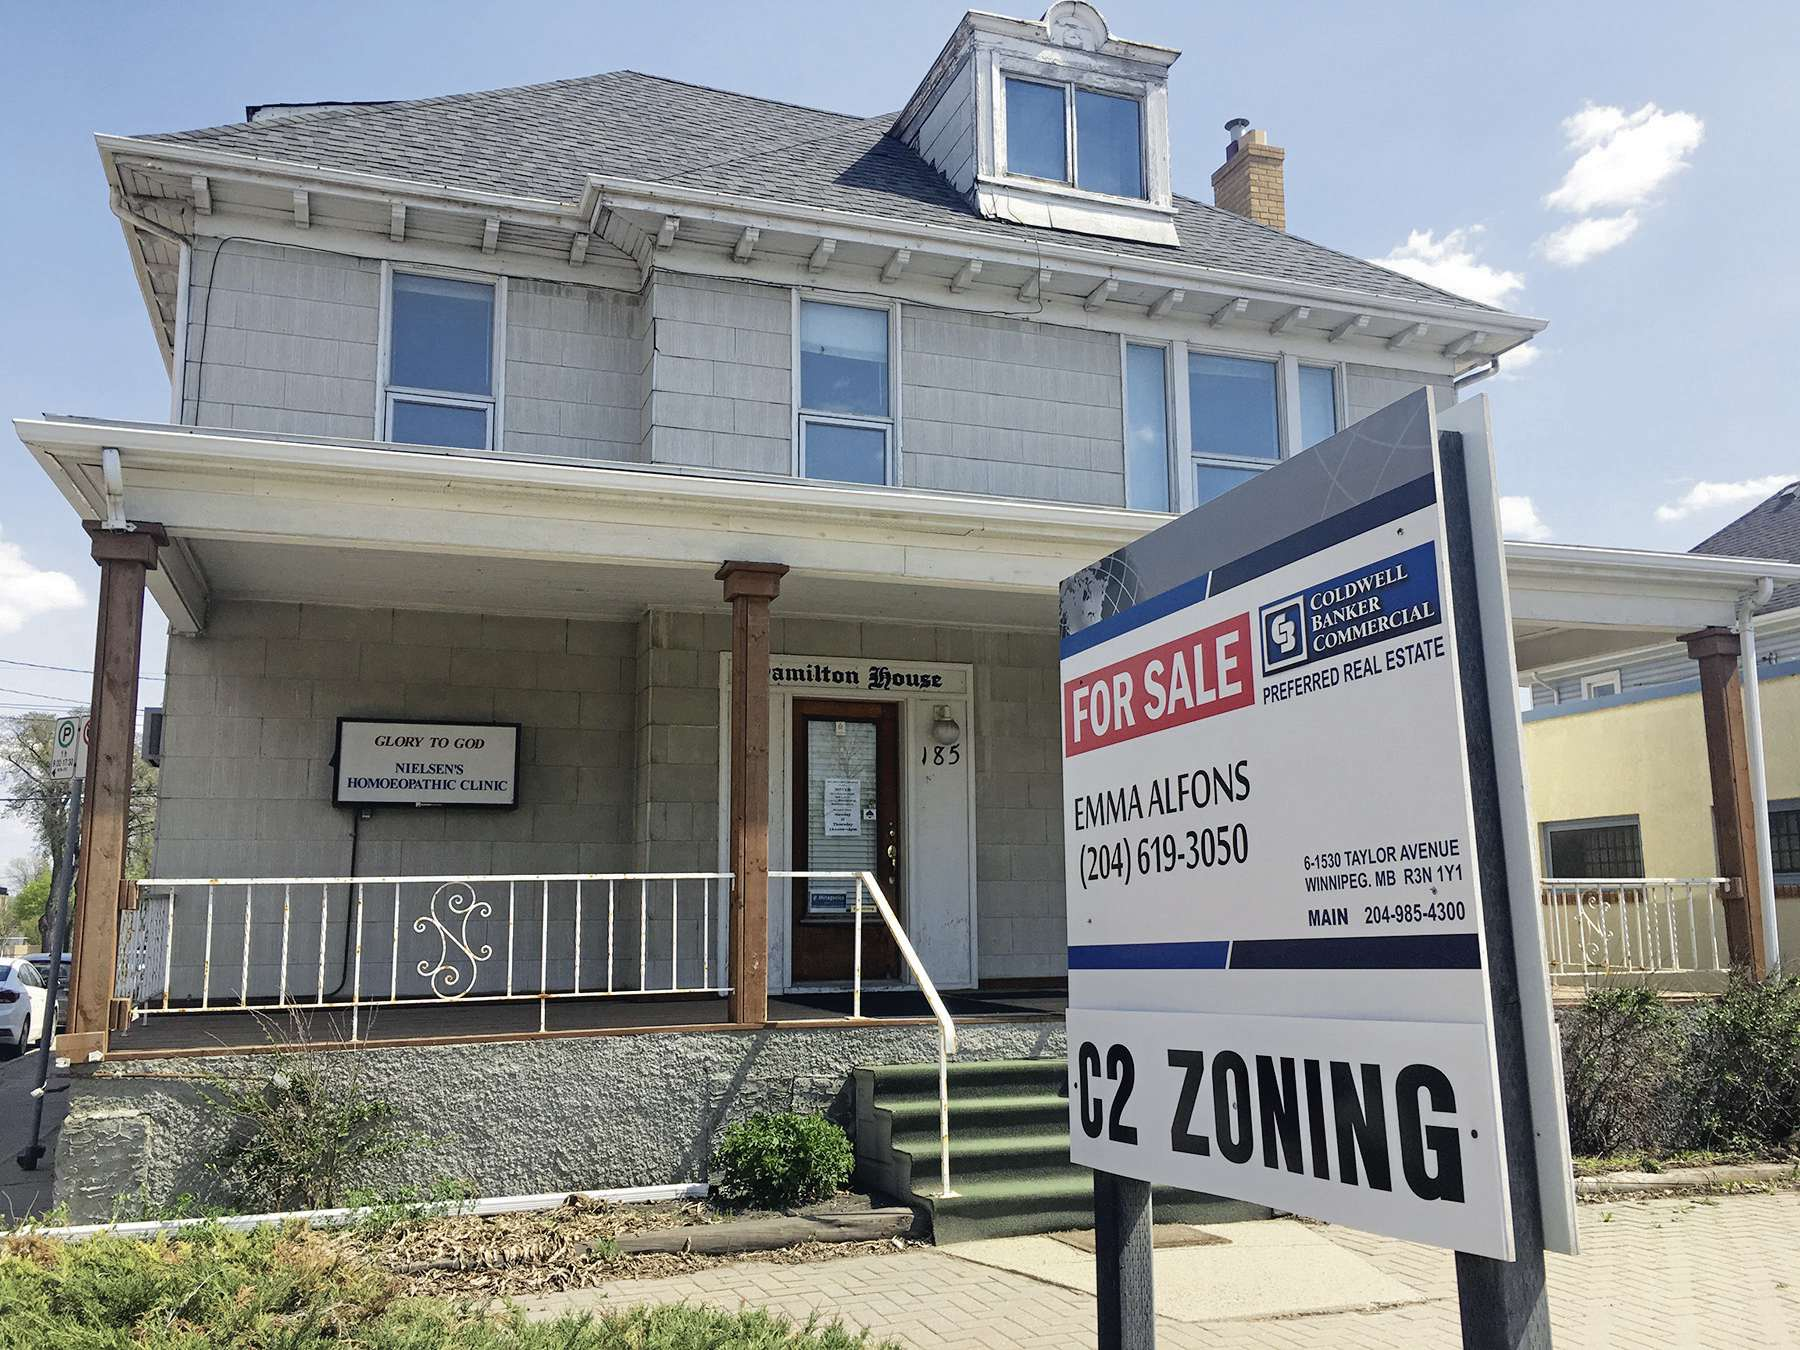 Hamilton House, at 185 Henderson Hwy., is up for sale. The former home of Dr. T.G. Hamiton was once a hub of spiritualist and paranormal exploration in Winnipeg.